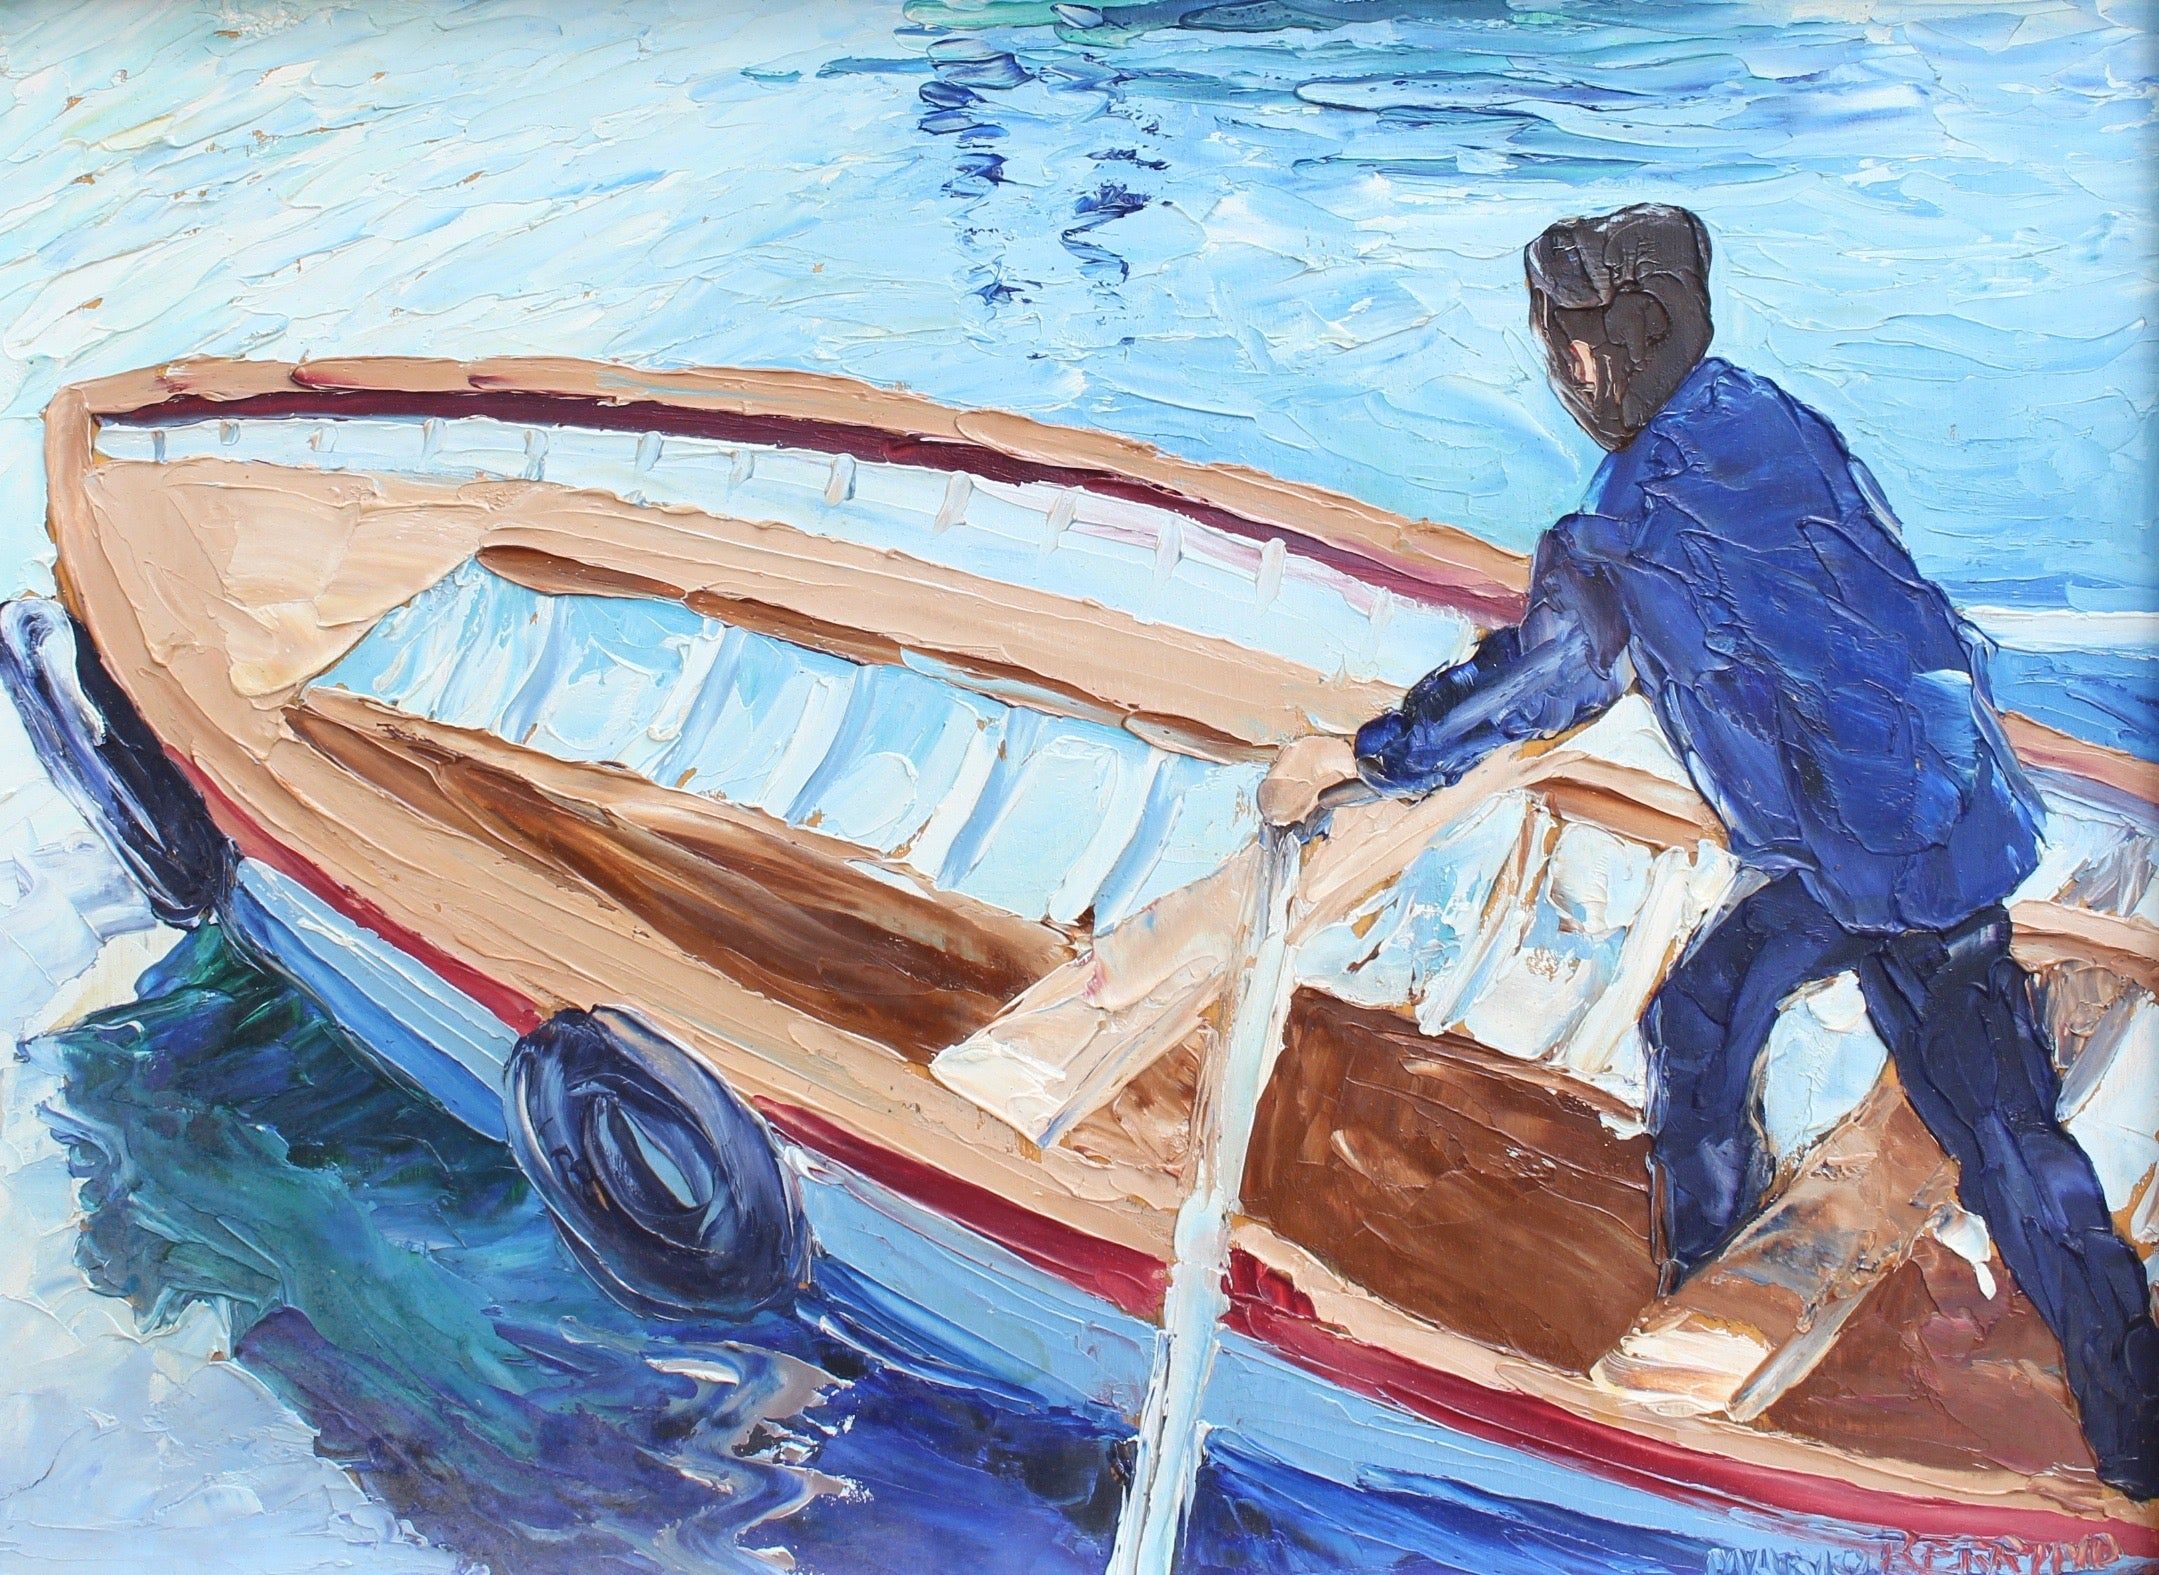 'The Man in the Boat' by Mario Berrino (circa 1970s)